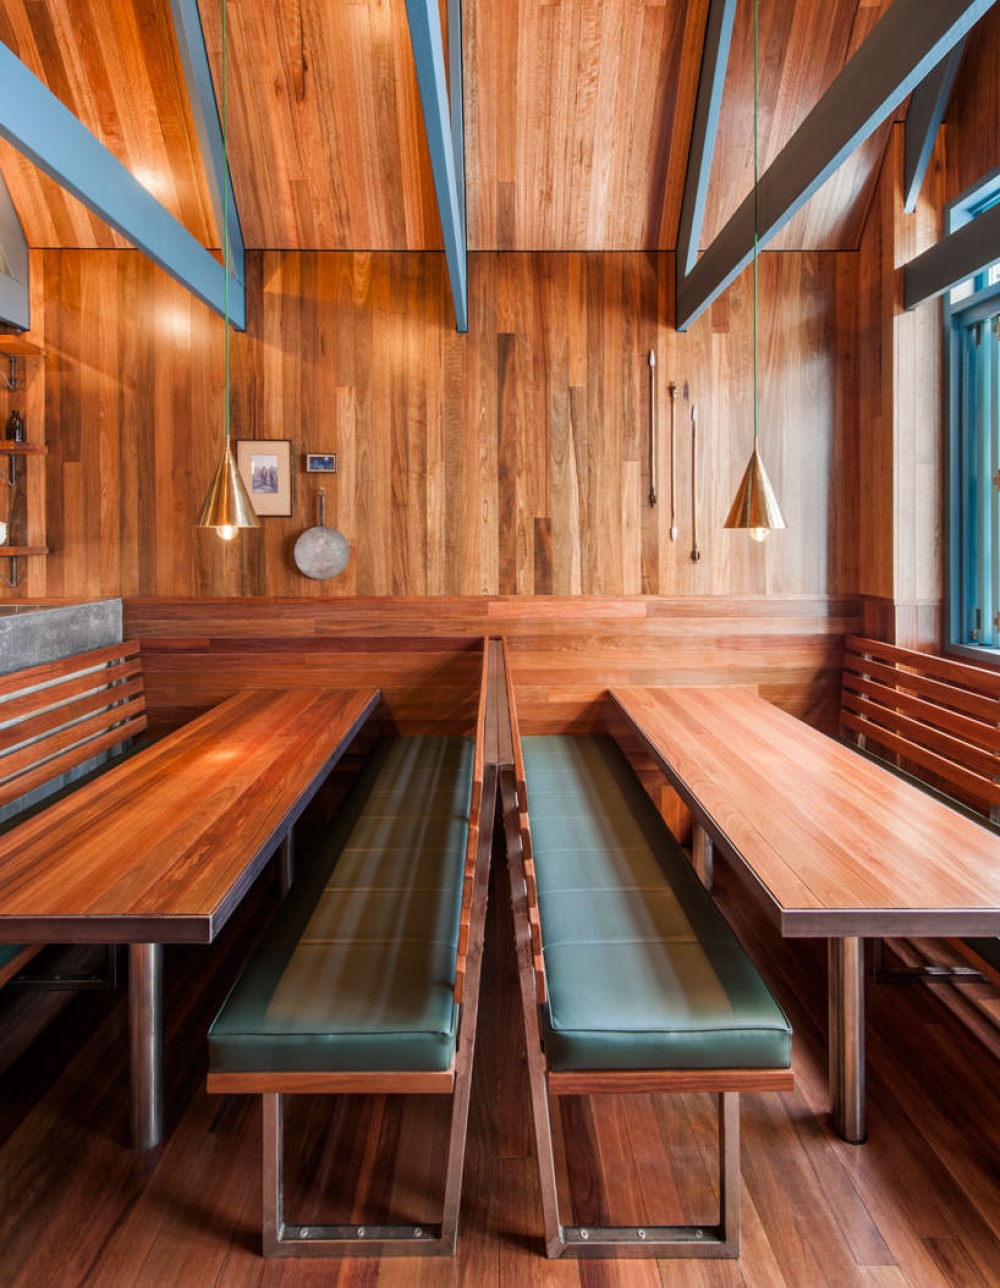 519005-1000-1454565135-A-bar-in-Adelaide-thats-just-like-the-tiny-house-from-Up5